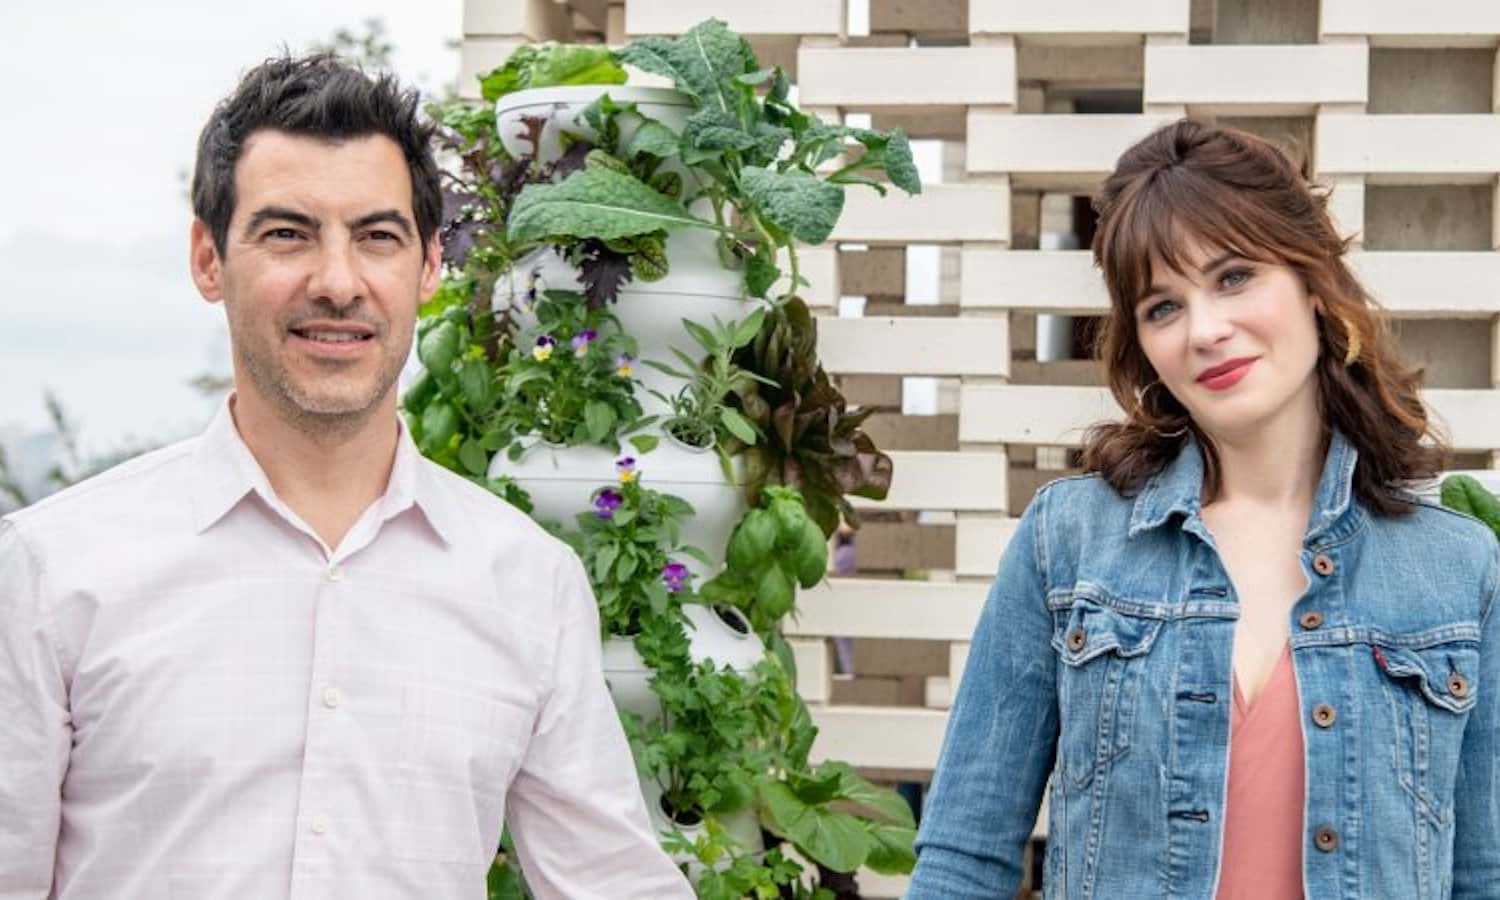 Hollywood producer Jacob Pechenik and his wife, actress Zooey Deschanel, started The Farm Project and Lettuce Grow to bring people closer to farms.